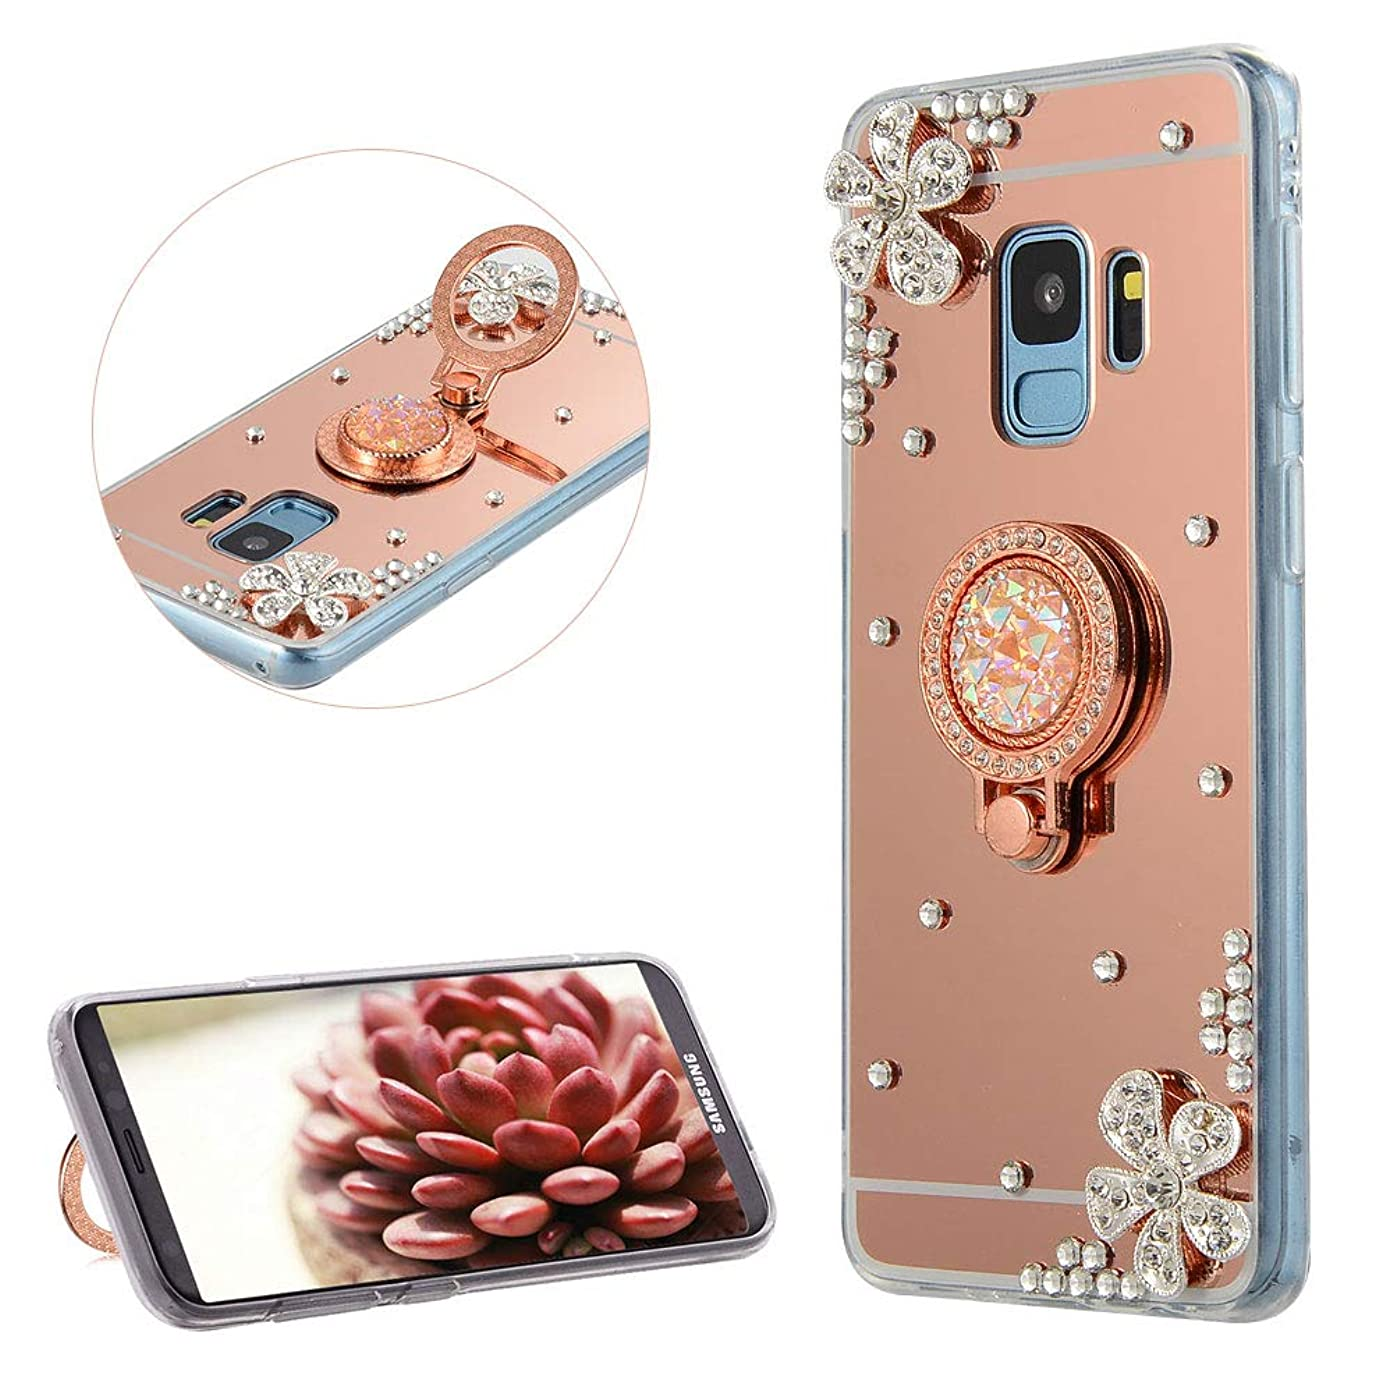 DasKAn Rhinestone Mirror Case for Samsung Galaxy S9 Plus with Metal Finger Holder Ring Stand,Crystal 3D Diamond Design Slim Soft Silicone Back Cover Flexible TPU Protective Phone Case,Rose Gold#1